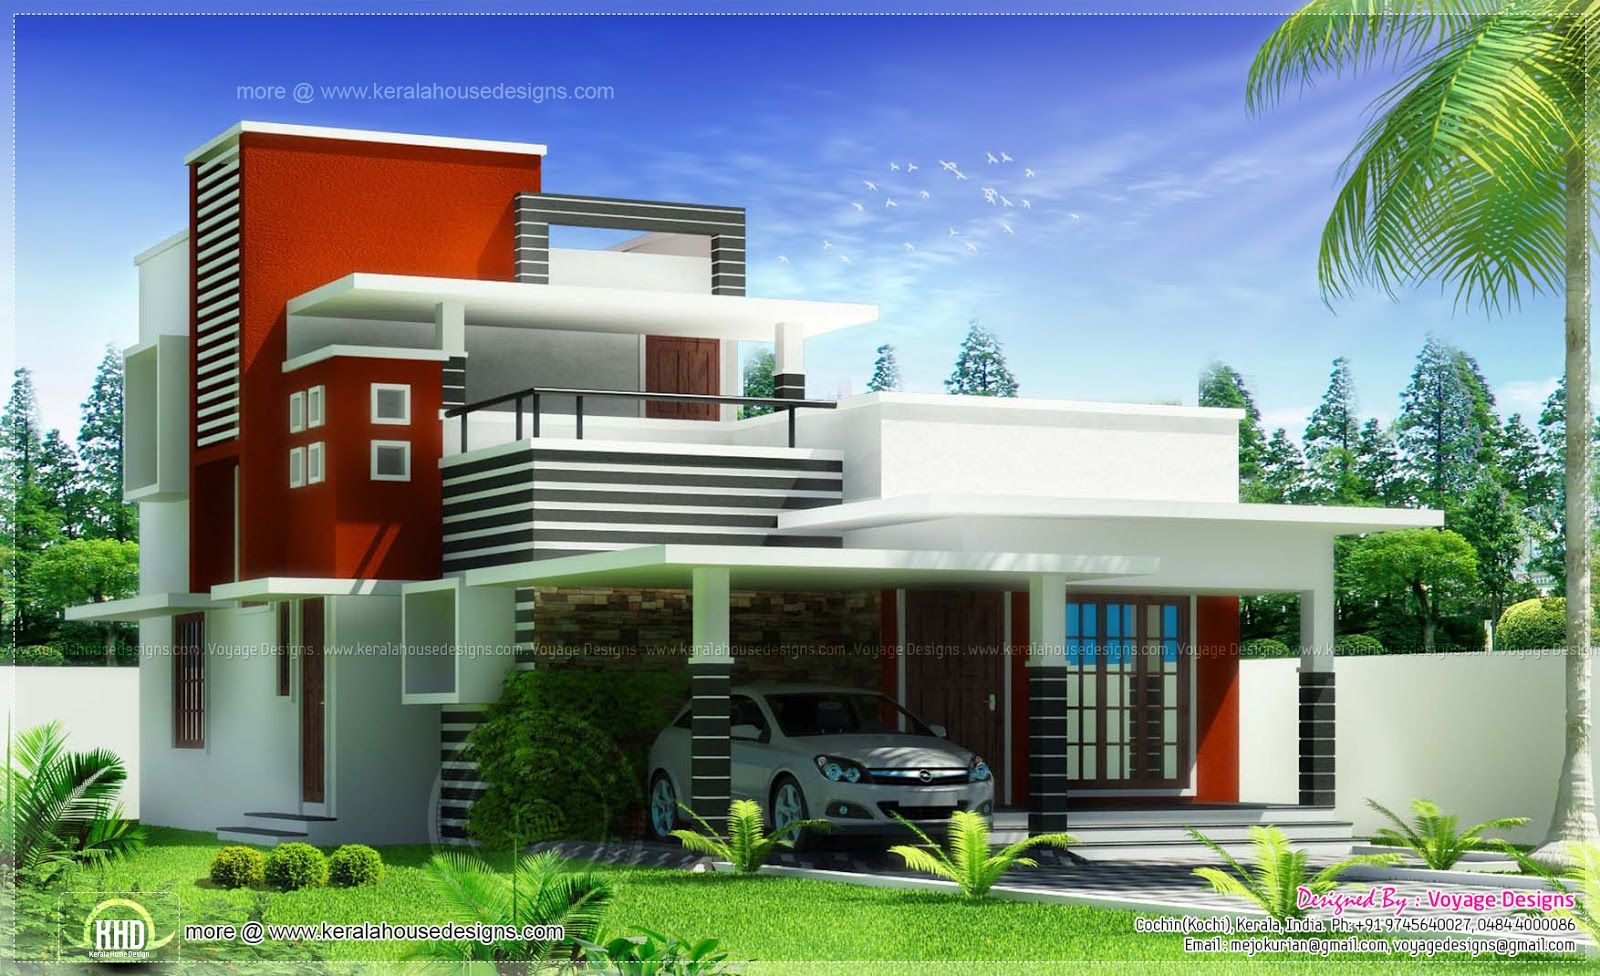 Kerala house designs architecture pinterest kerala for Elevation of kerala homes